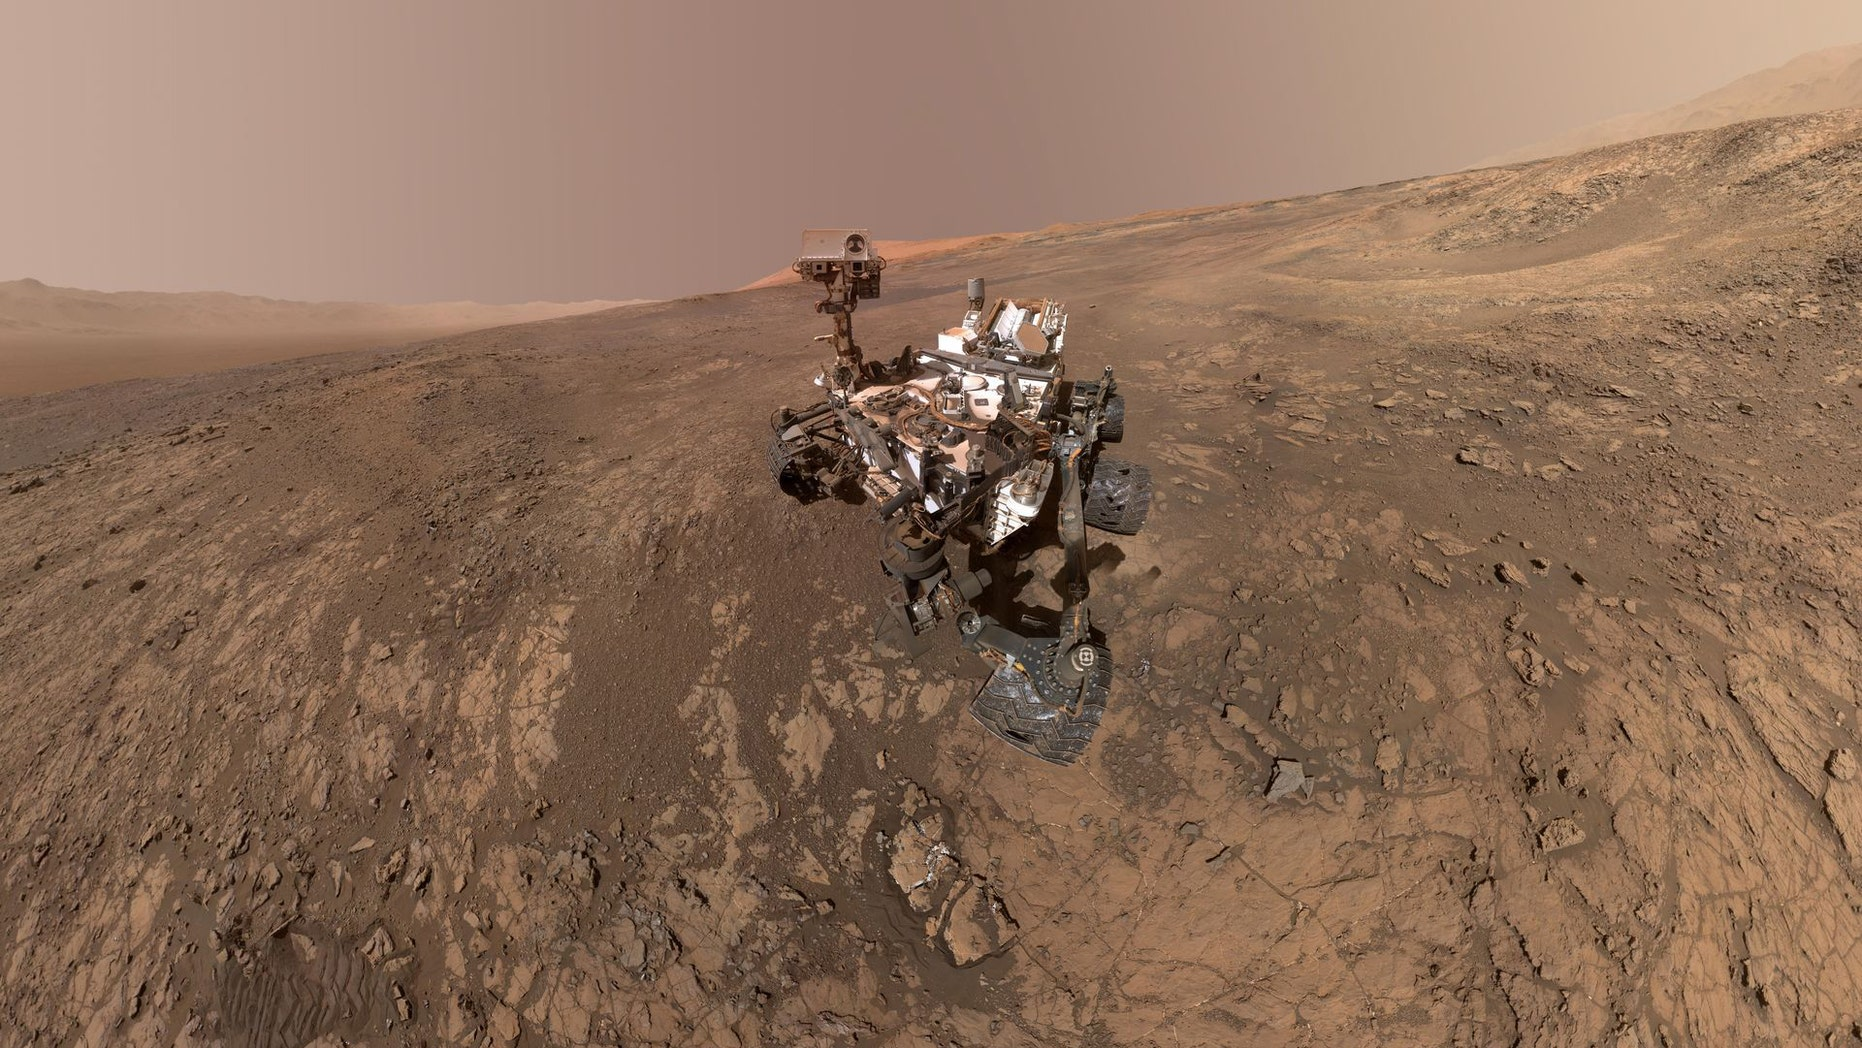 This self-portrait of NASA's Curiosity Mars rover shows the vehicle on Vera Rubin Ridge in Gale crater on Mars. North is on the left and west is on the right with Gale crater's rim on the horizon of both edges. This mosaic was assembled from dozens of